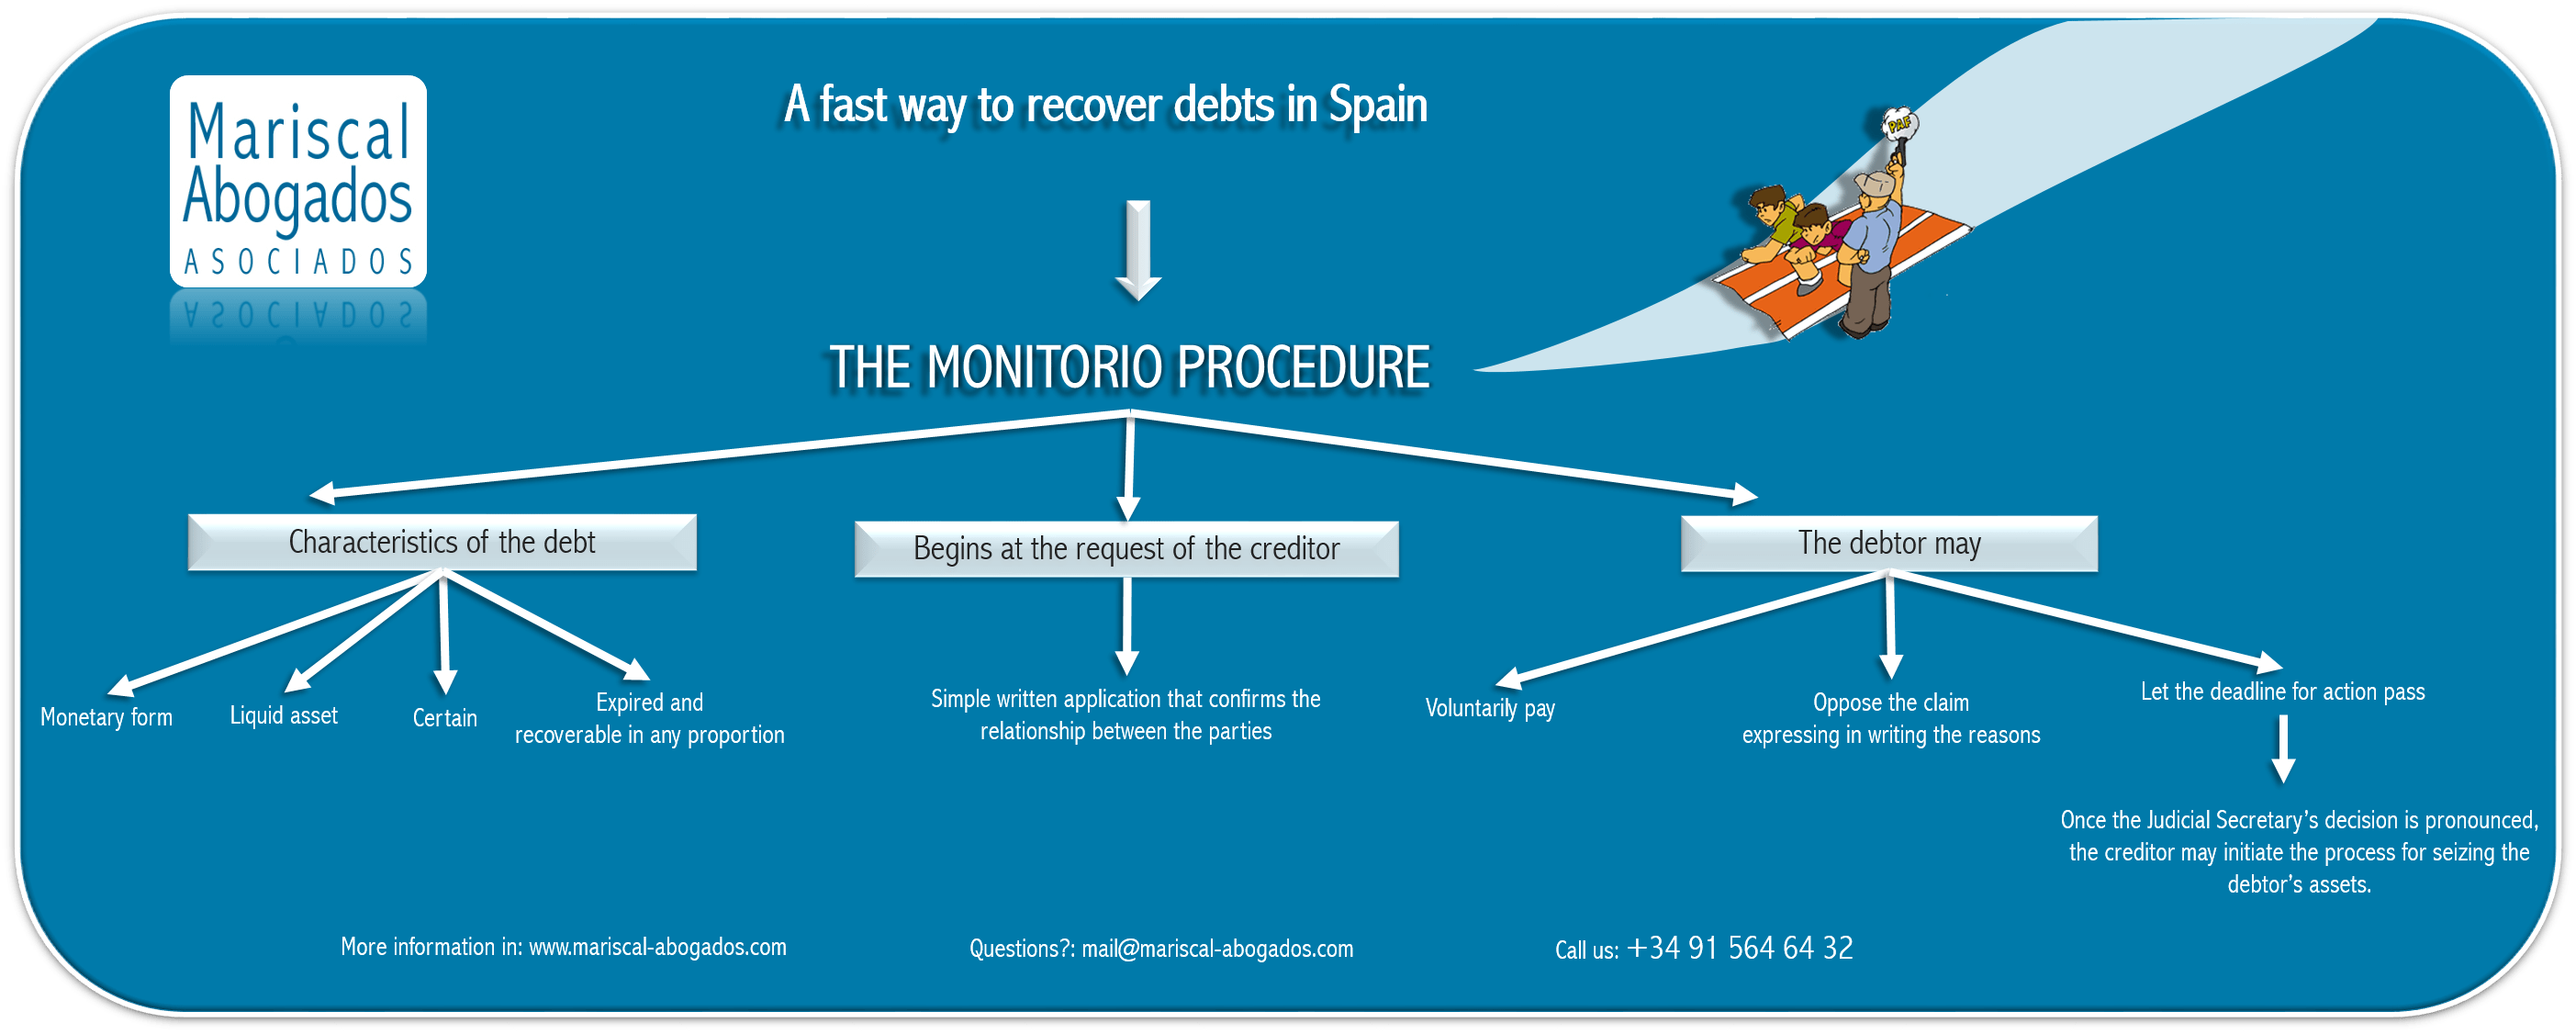 The monitorio procedure in Spain A fast way to recover debts in Spain